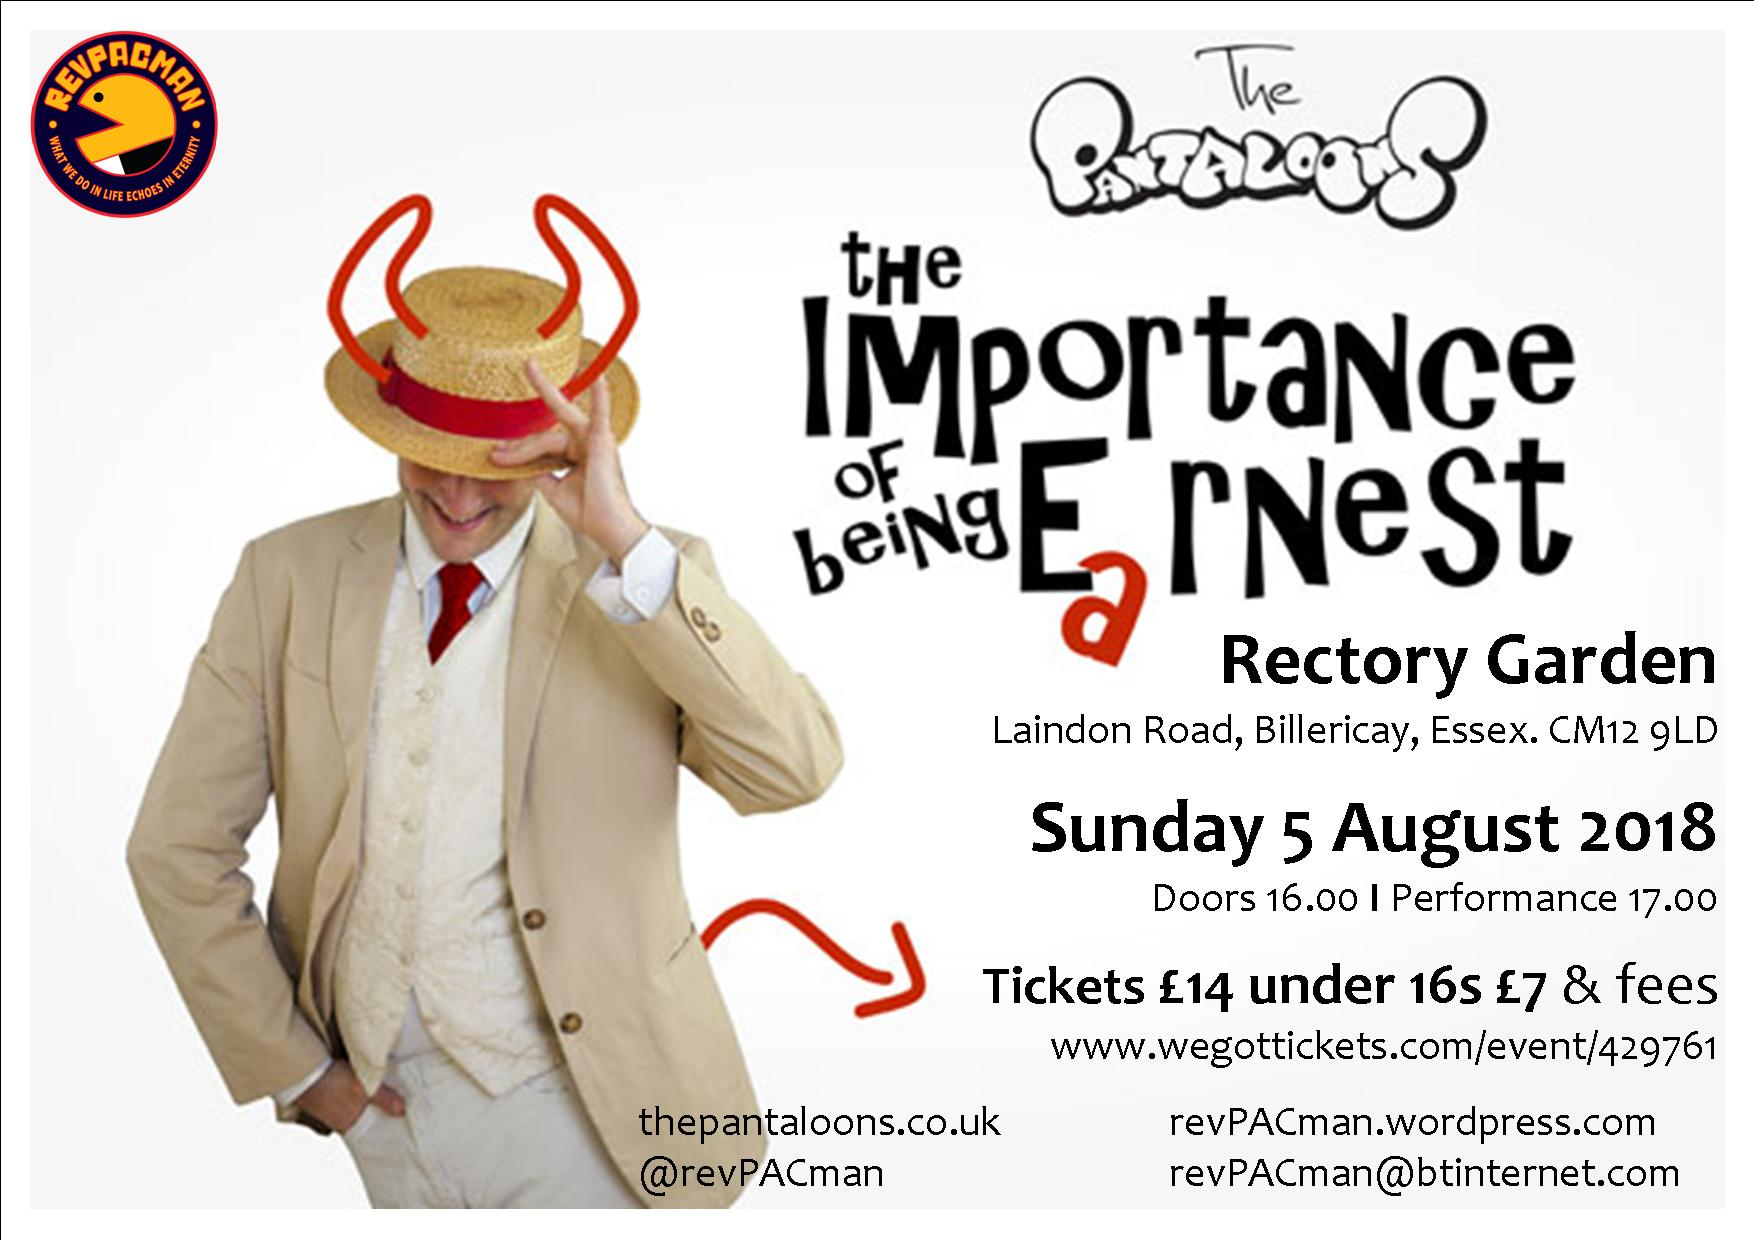 The Pantaloons: The Importance Of Being Earnest